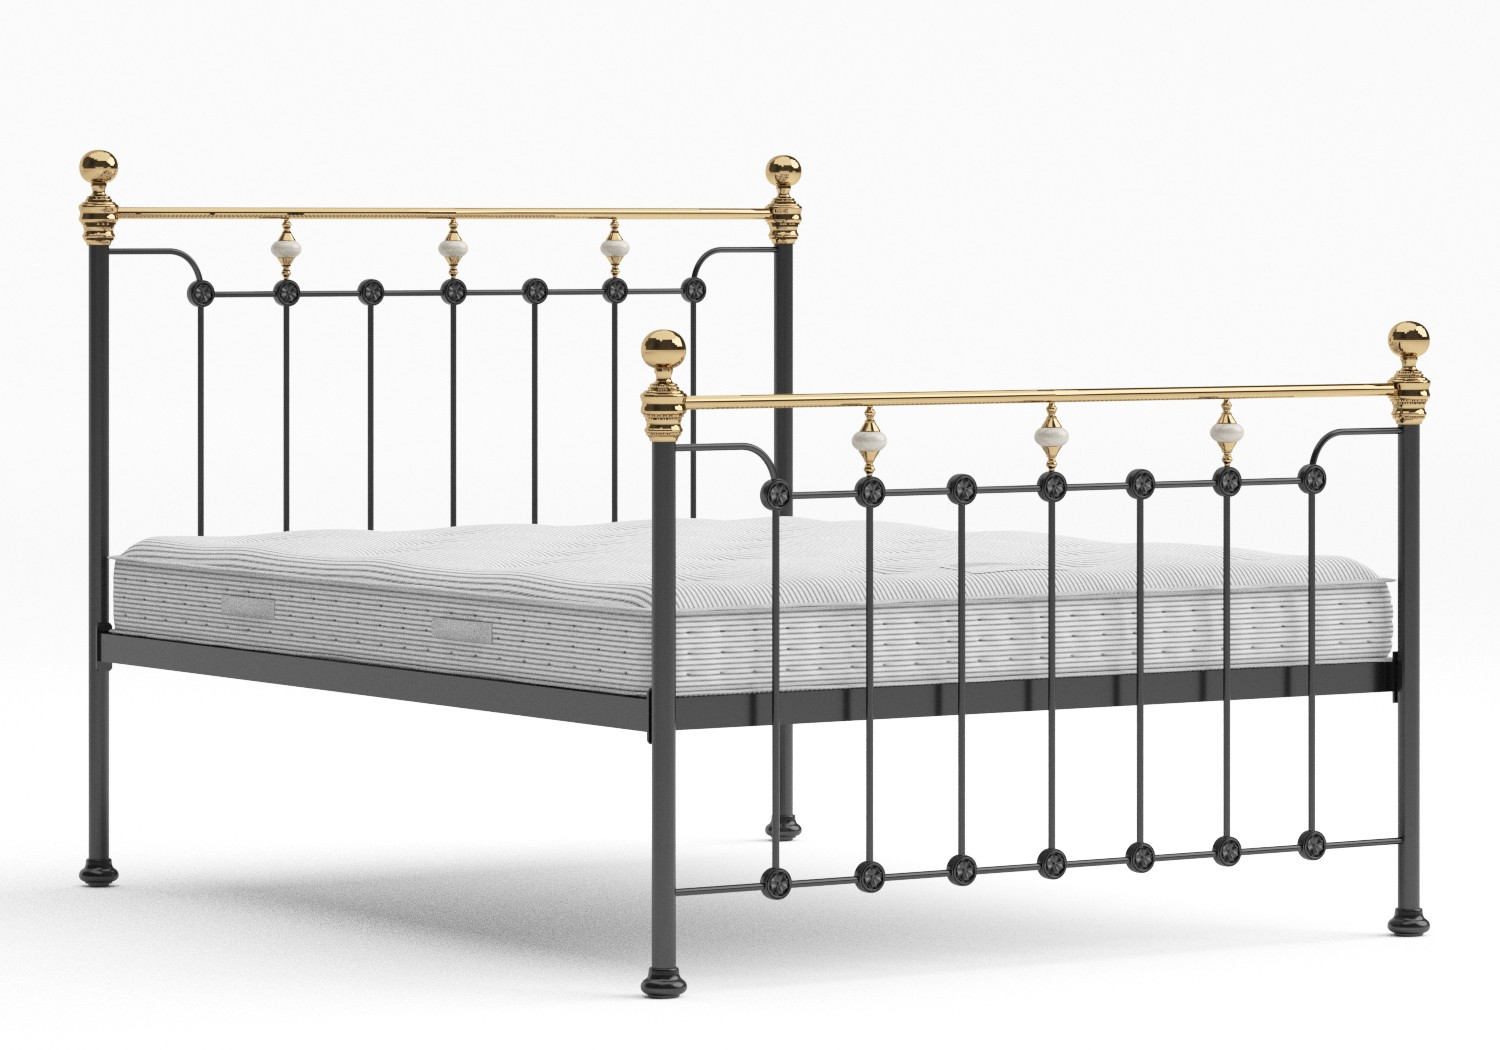 Glenholm Iron/Metal Bed in Satin Black with Brass details shown with Juno 1 mattress